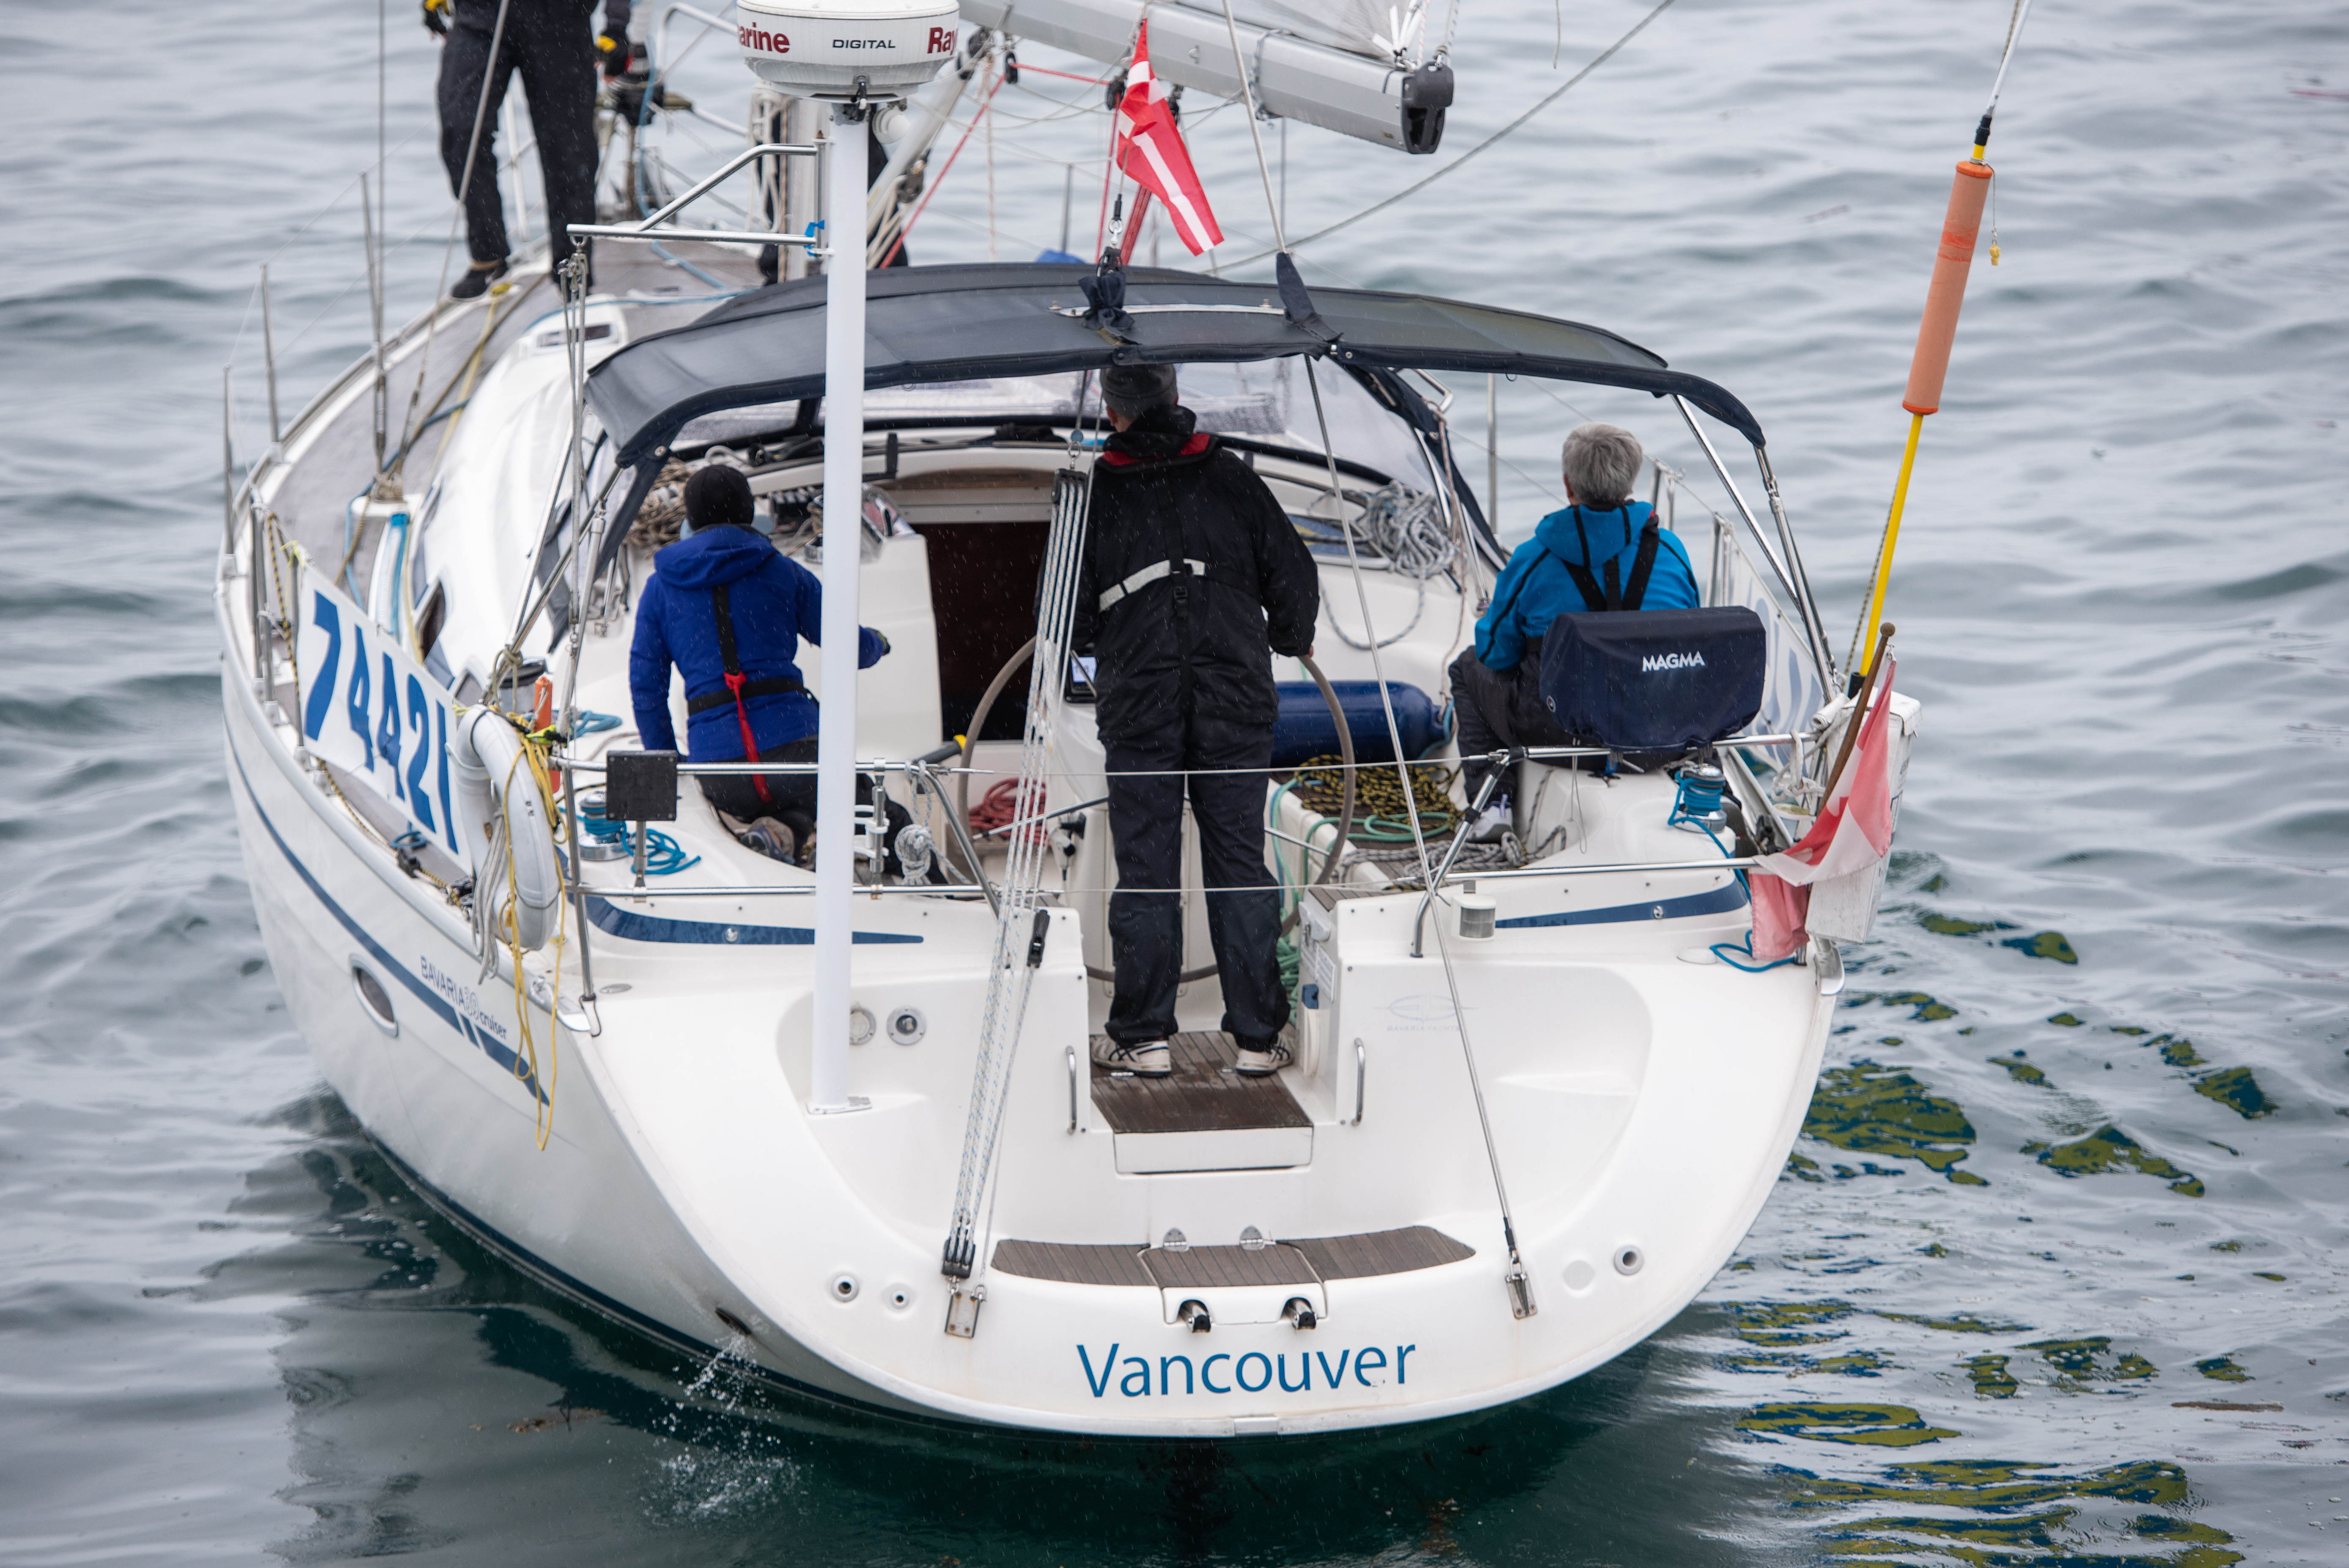 Swiftsure-25-May-2019-RMS-Media-by-Rob-Porter-57